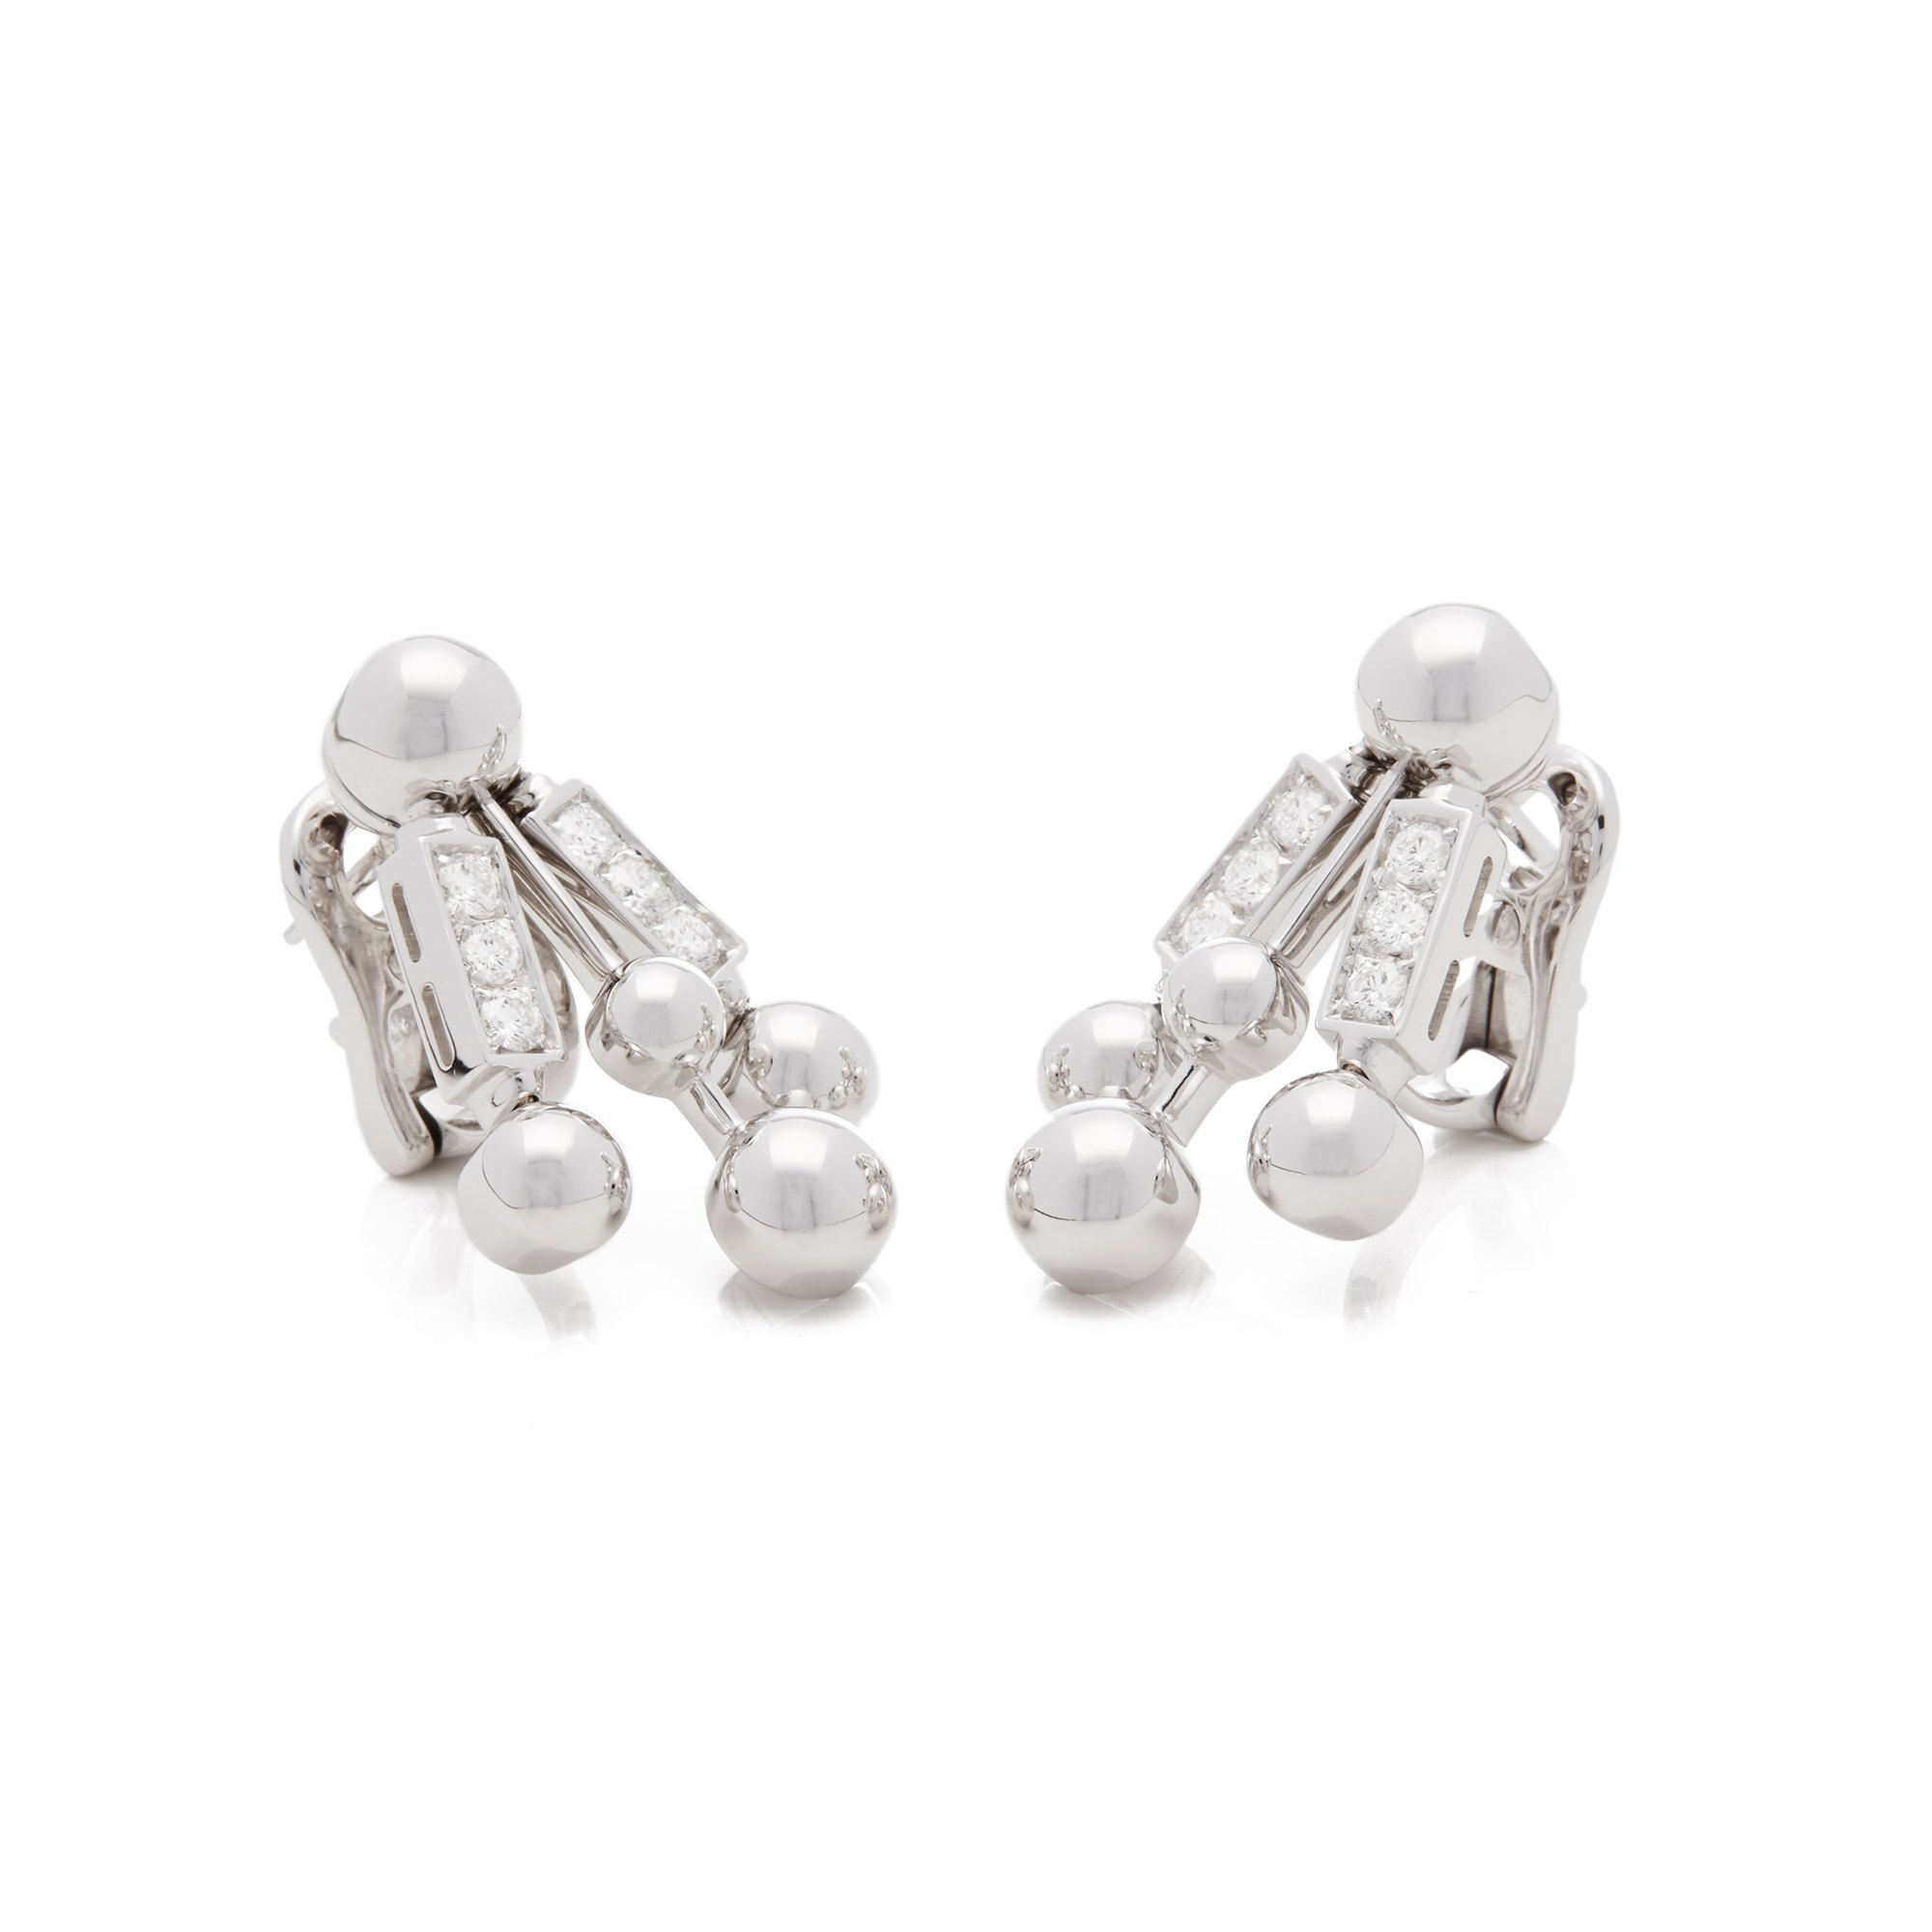 Bulgari 18k White Gold Diamond Drop Earrings